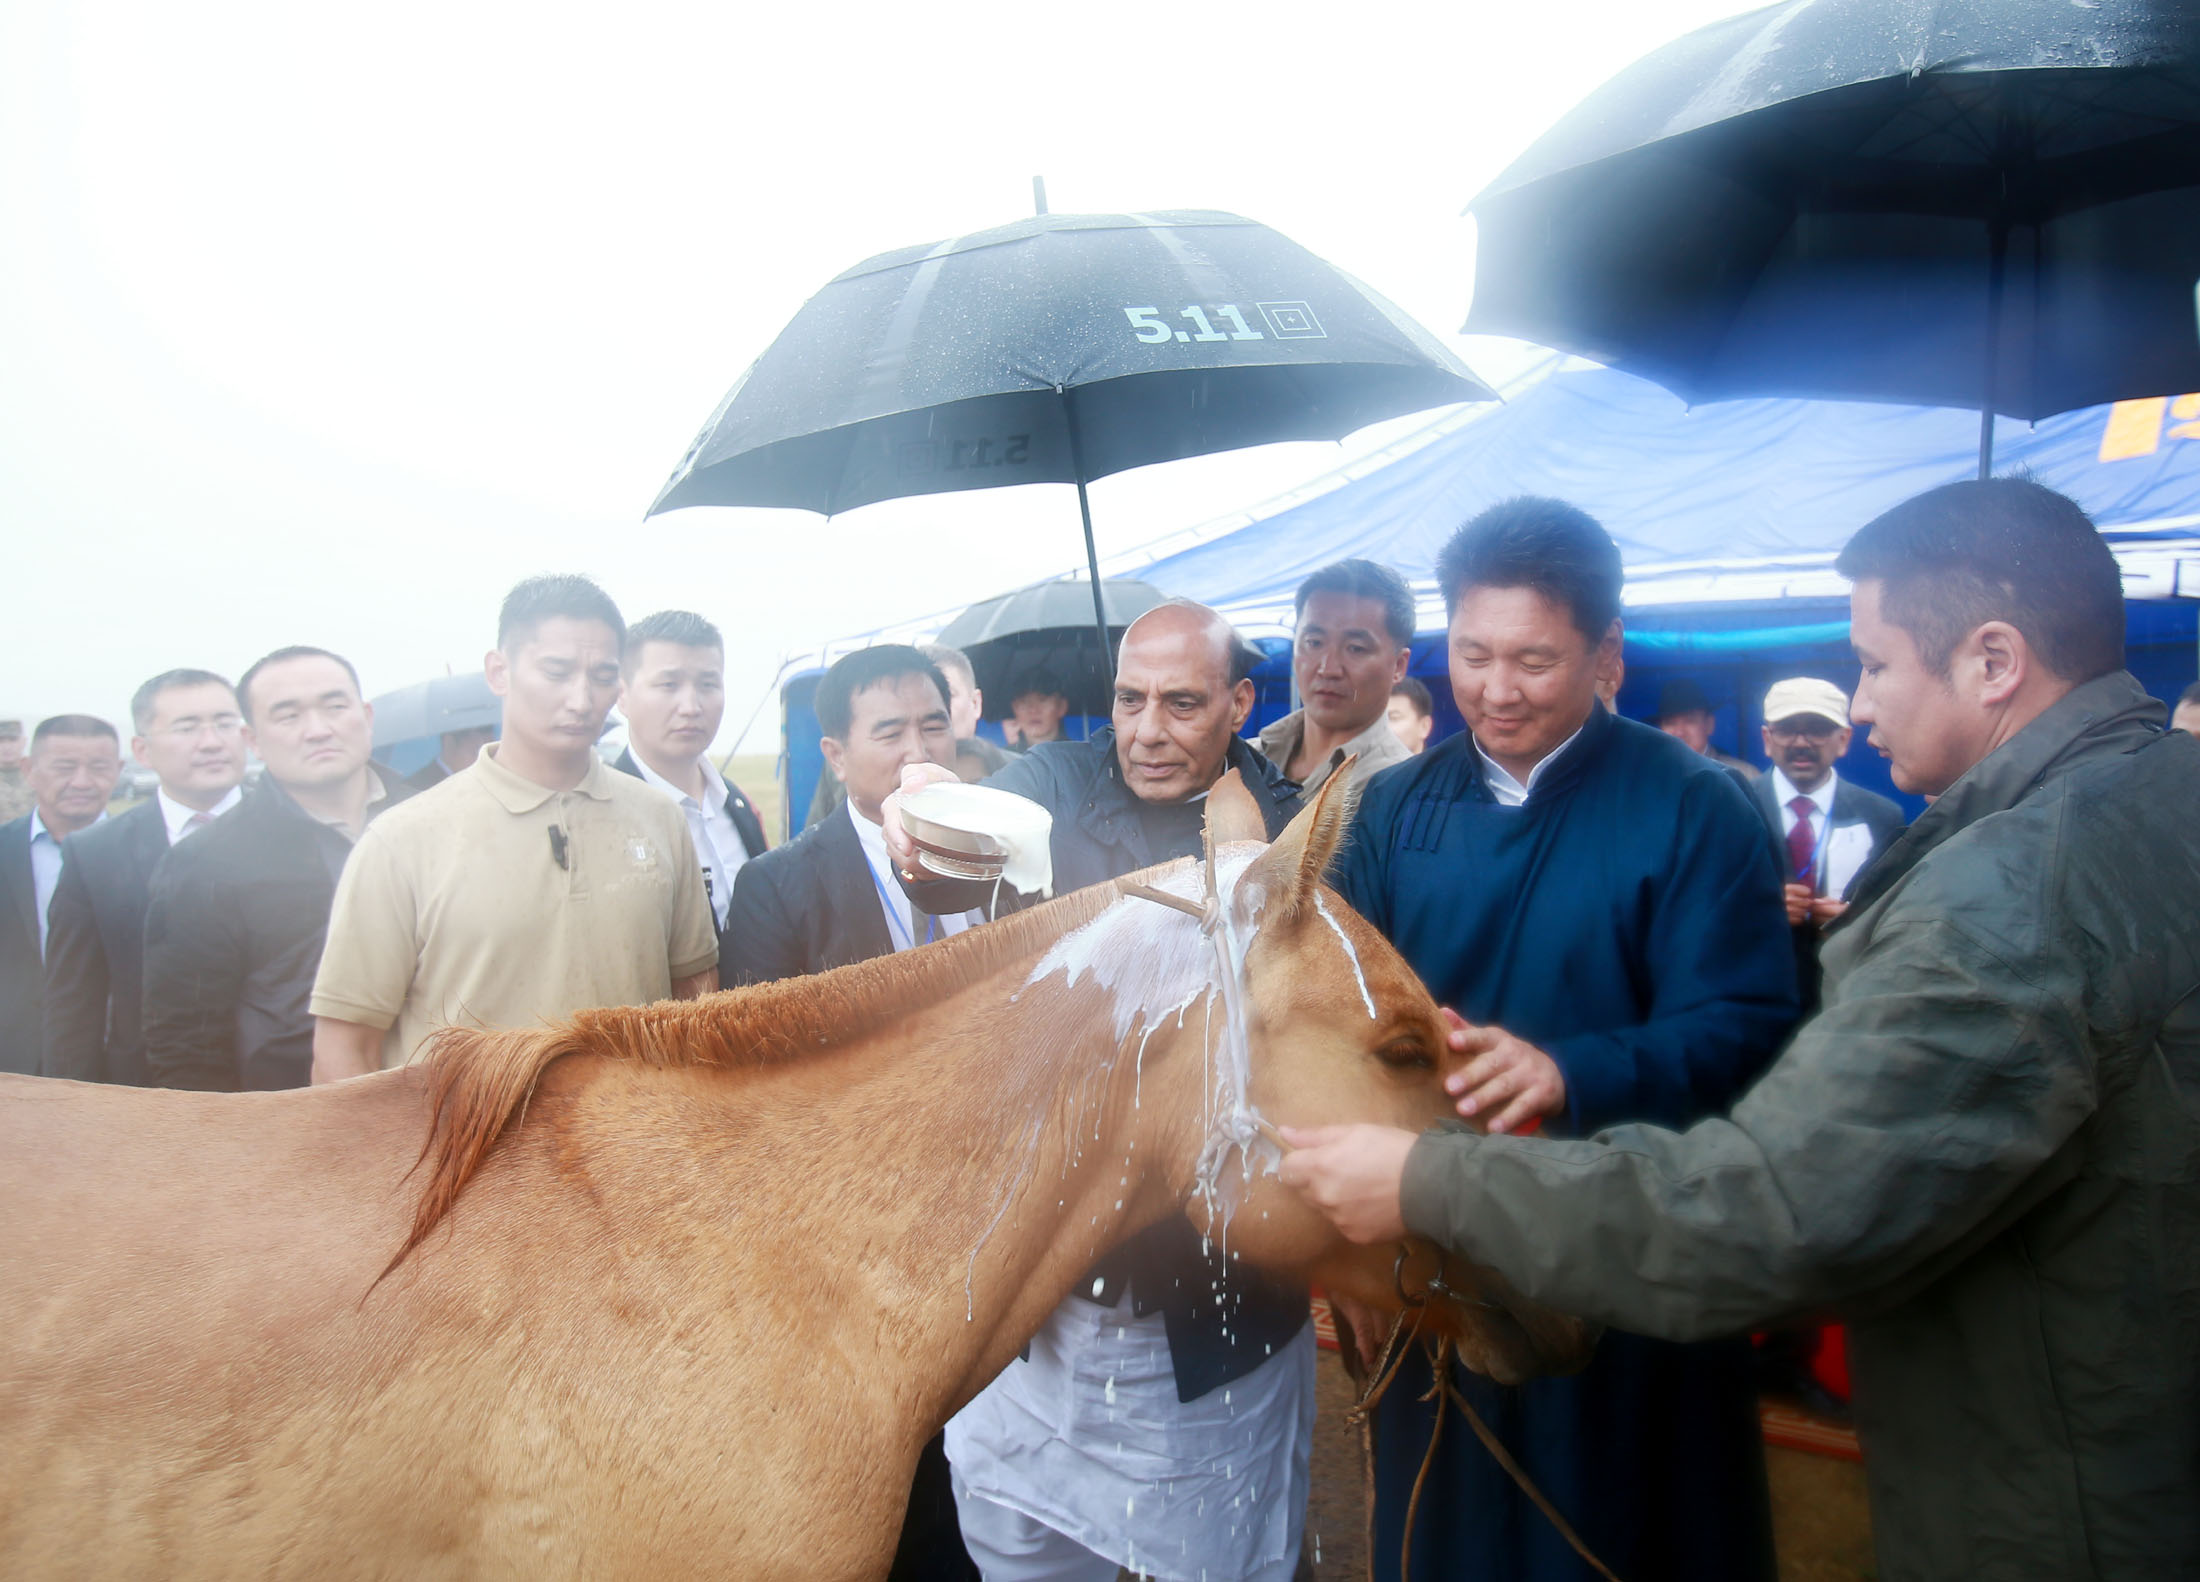 The Prime Minister of Mongolia, Mr. Ukhnaagin Khurelsukh presenting a horse to Shri Rajnath Singh, while honouring him on his maiden visit to the country, at Ulaanbaatar on June 23, 2018